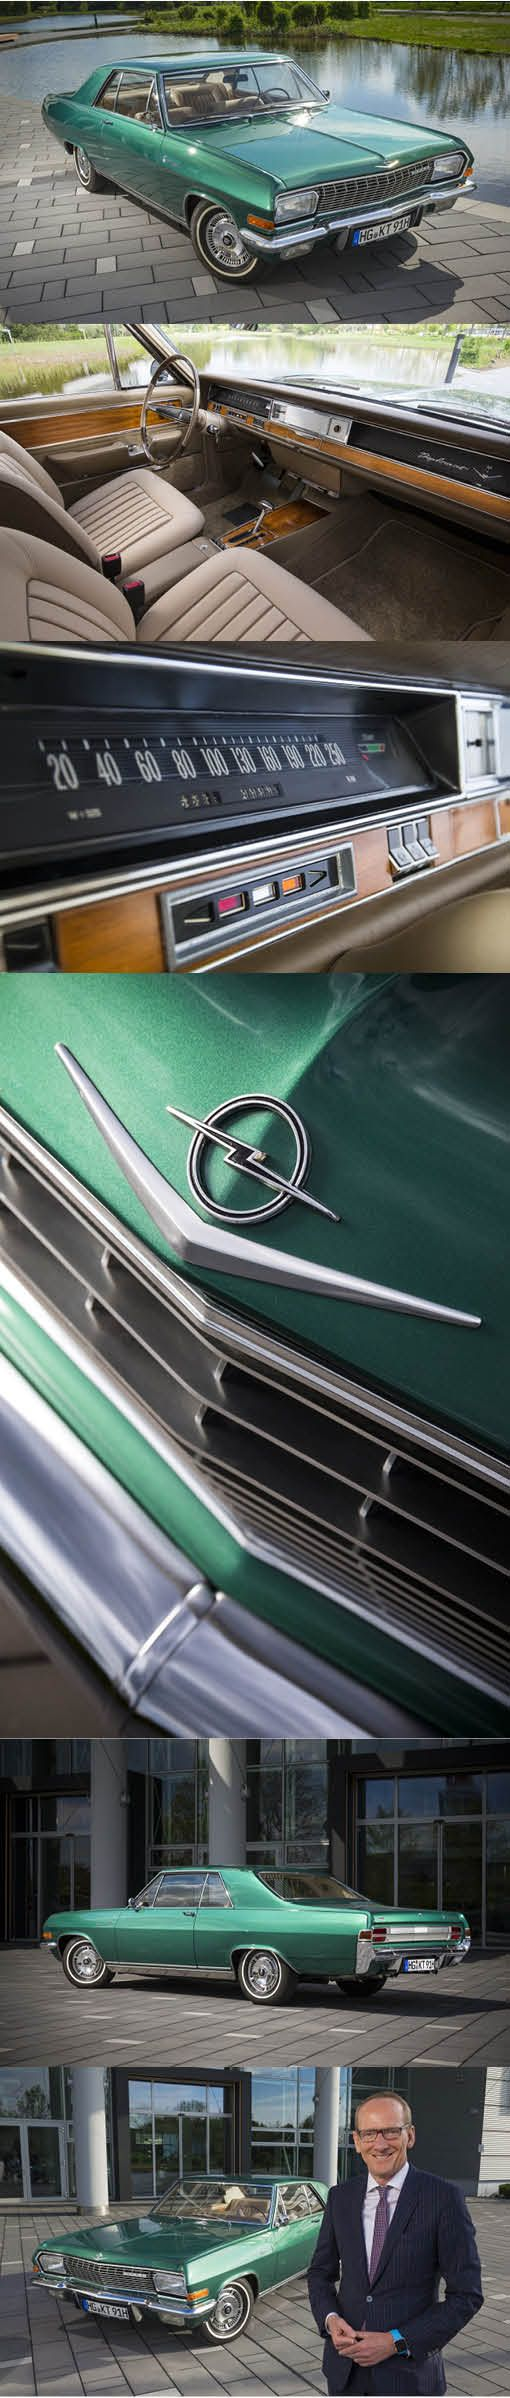 1965 Opel Diplomat 347 V8 Coupé / Germany / owner: Opel CEO Neumann / green